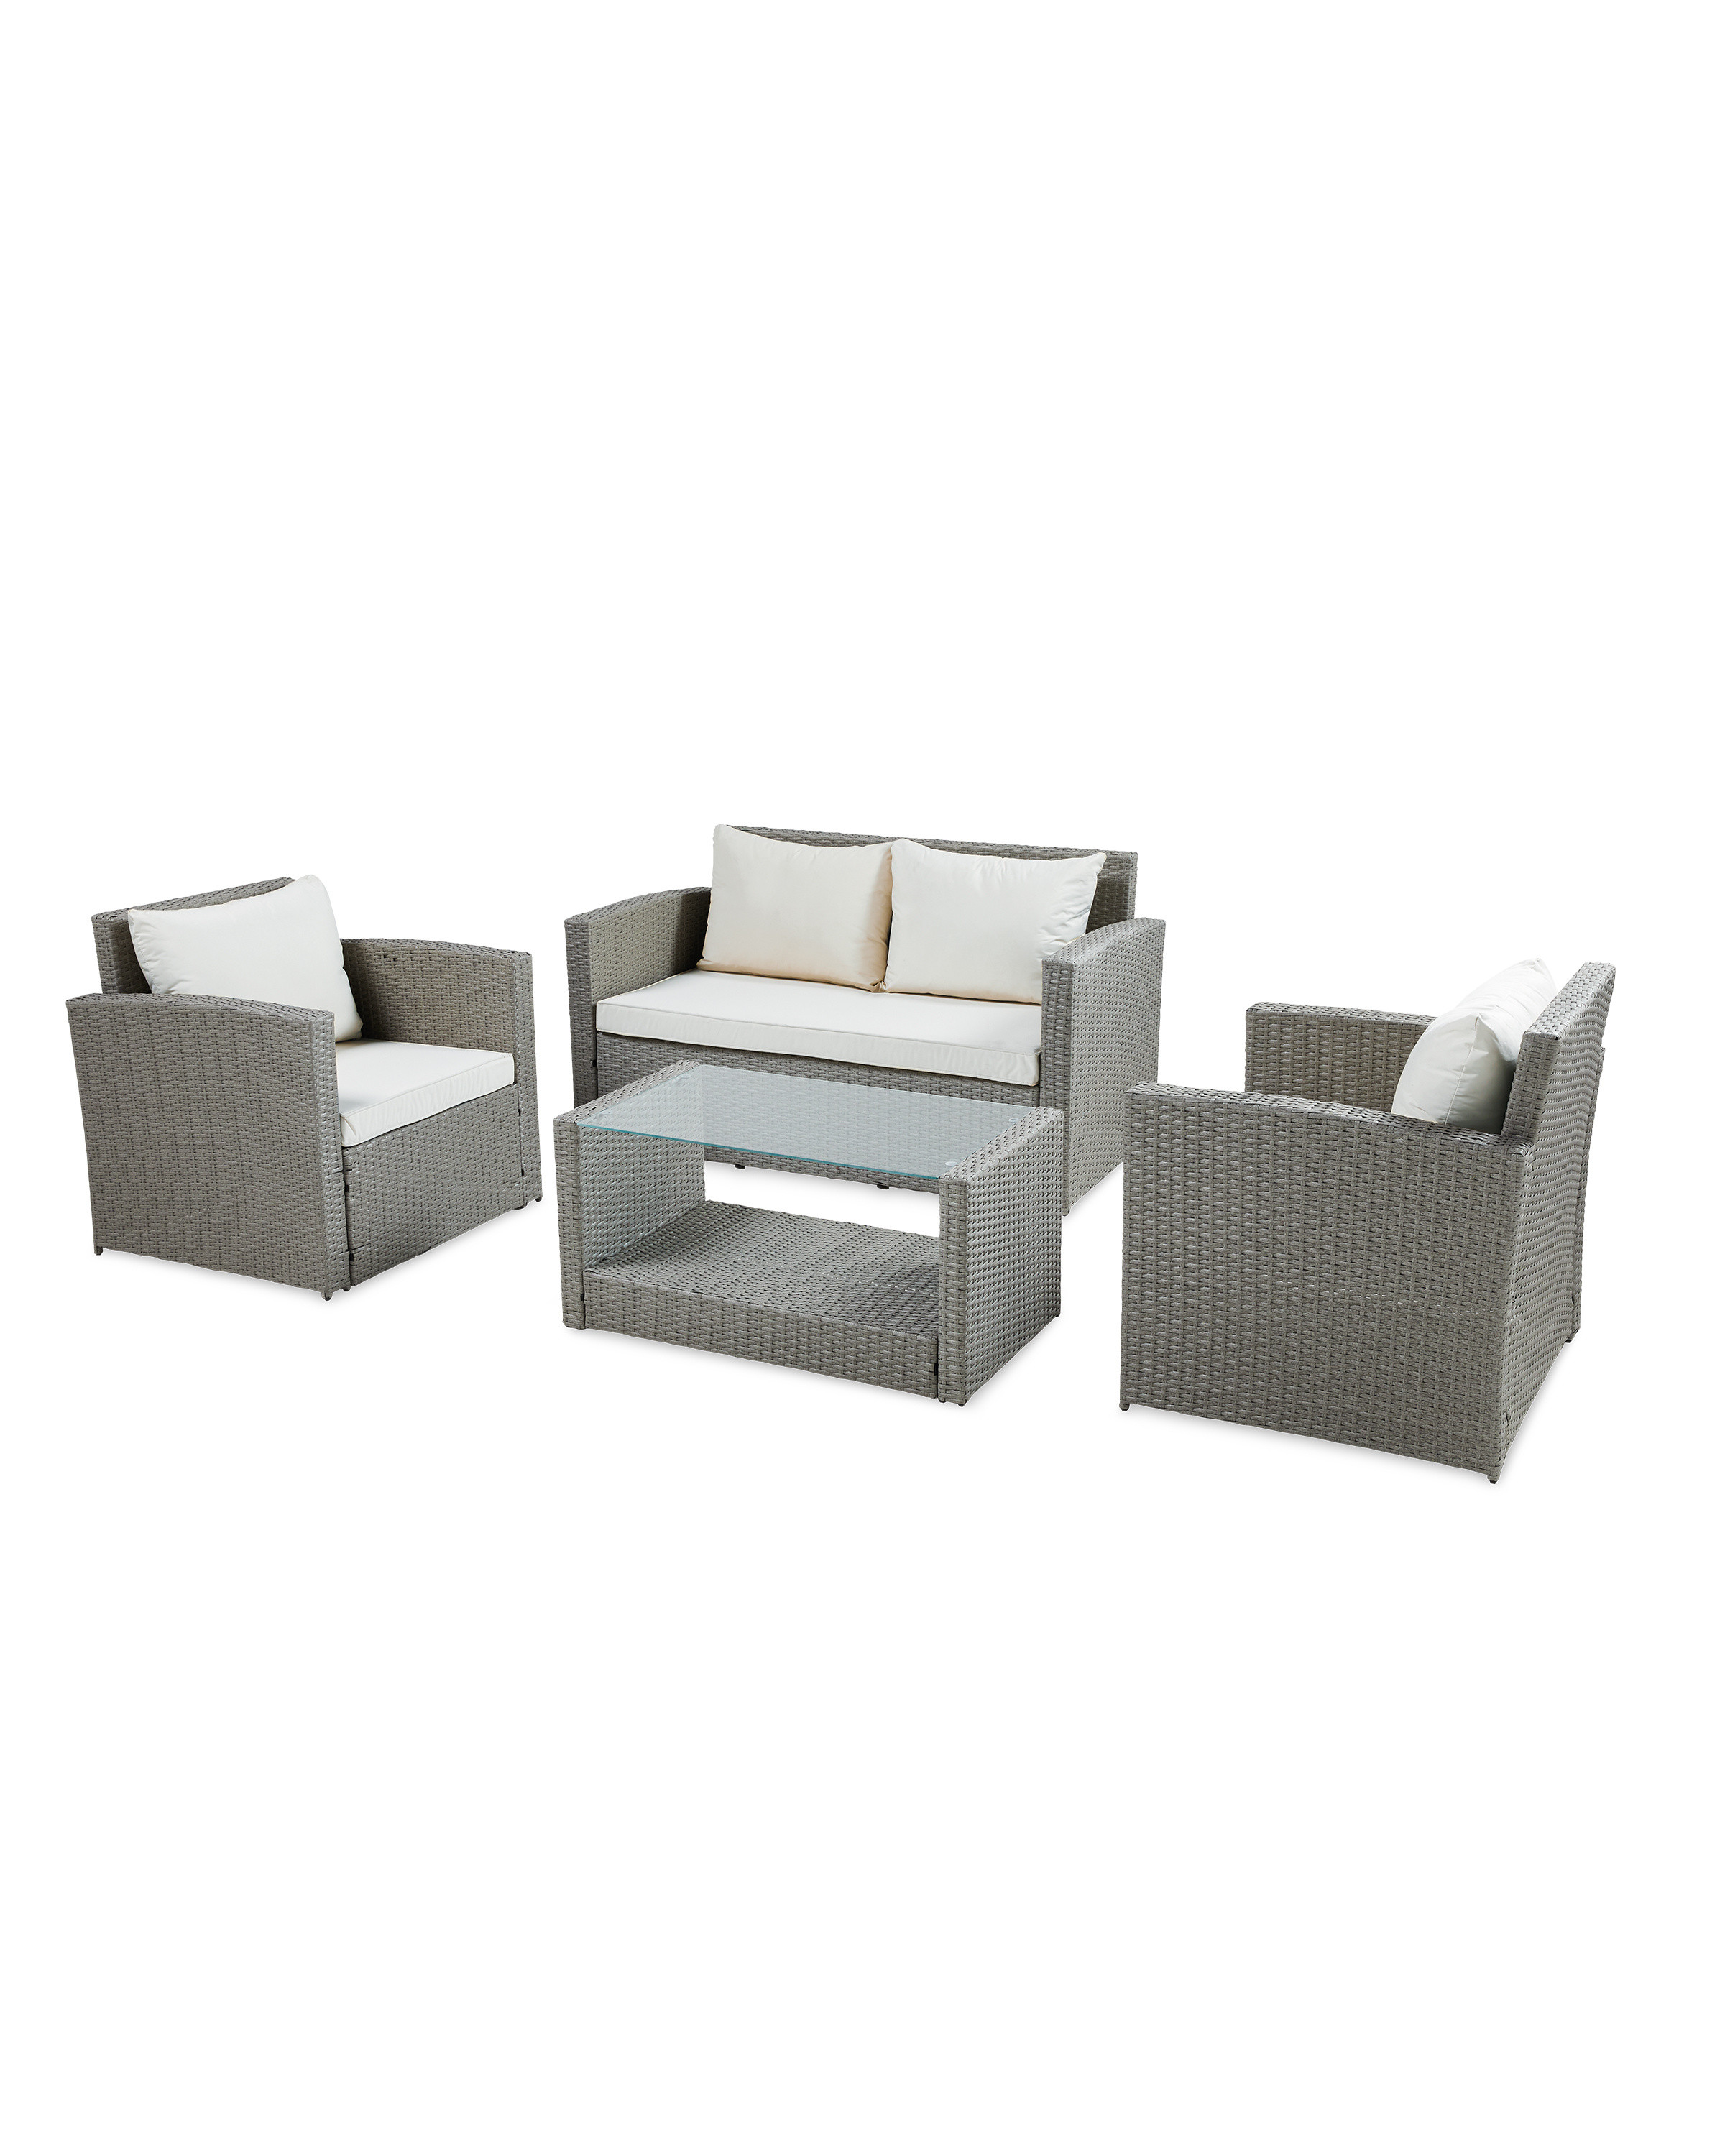 Strange Grey Rattan Effect Garden Set Interior Design Ideas Gentotryabchikinfo